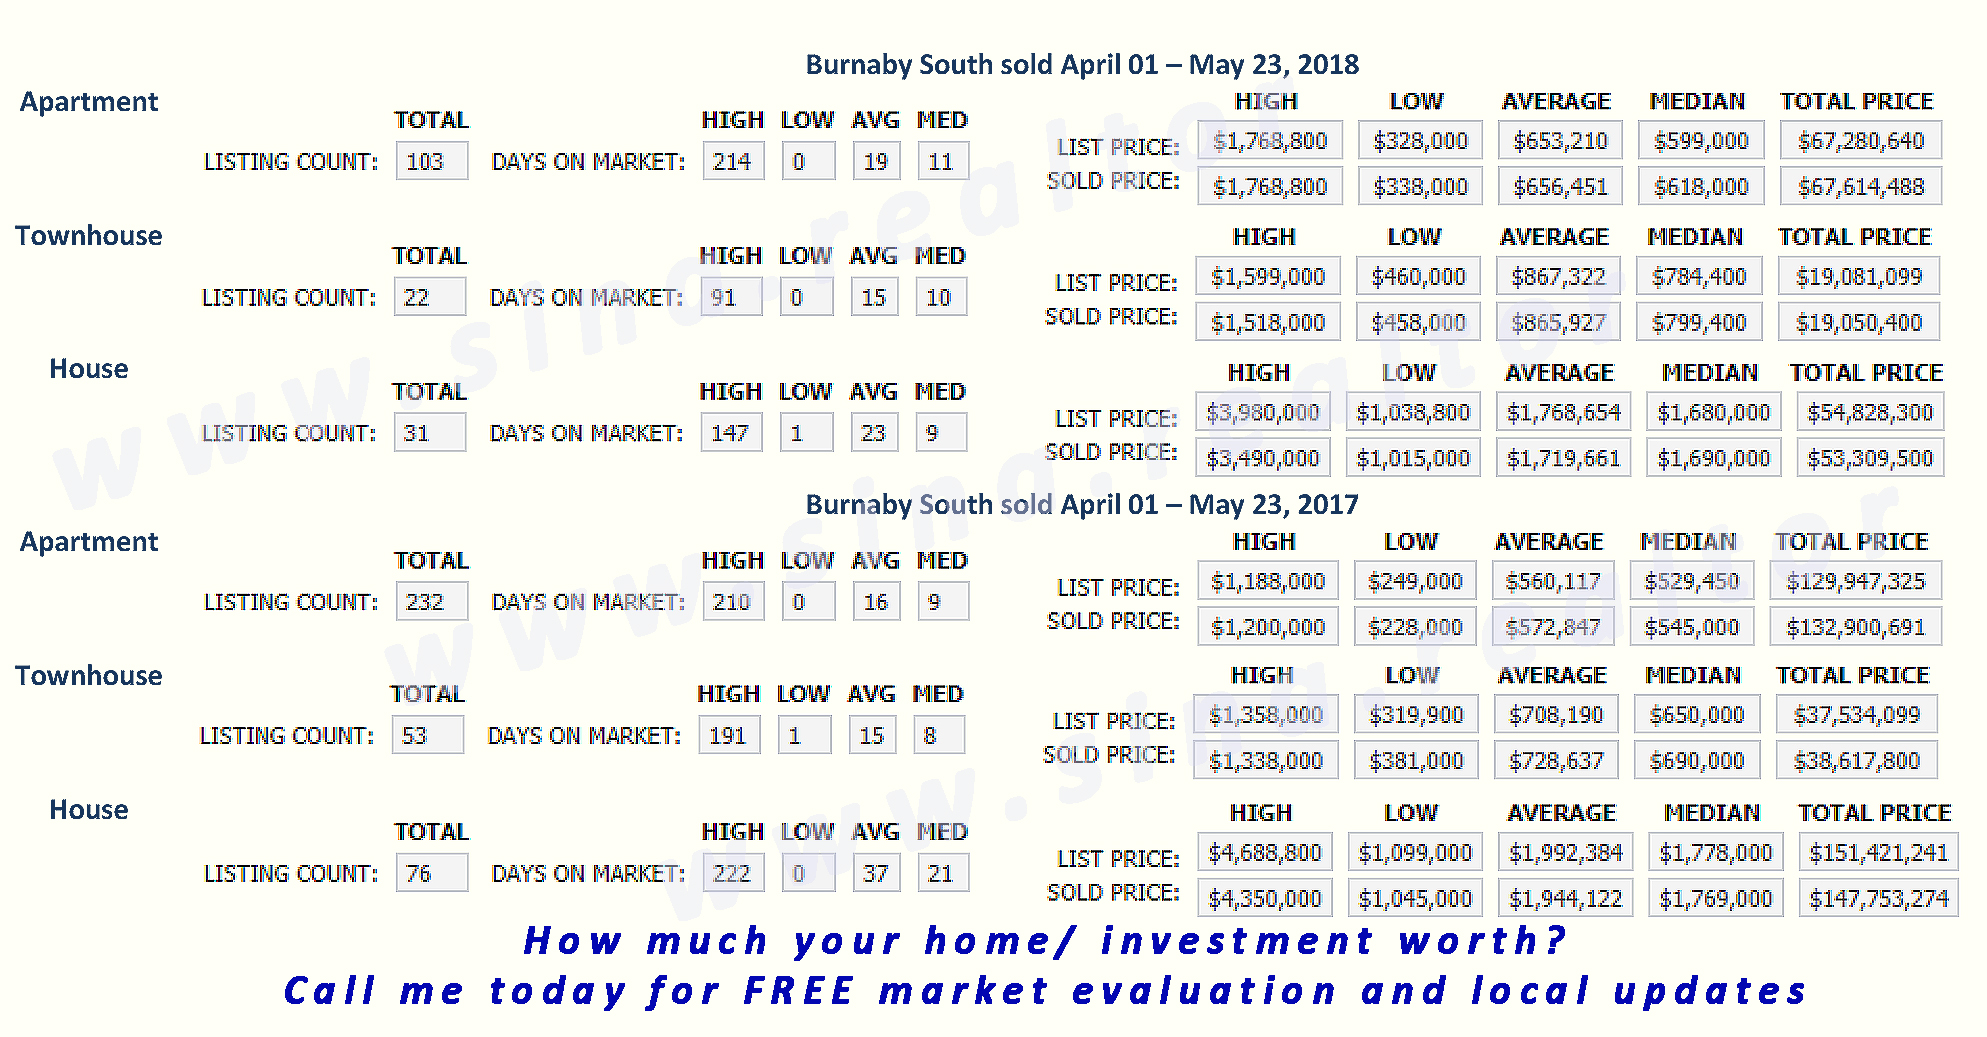 burnaby south sold april 01 may 23 2020